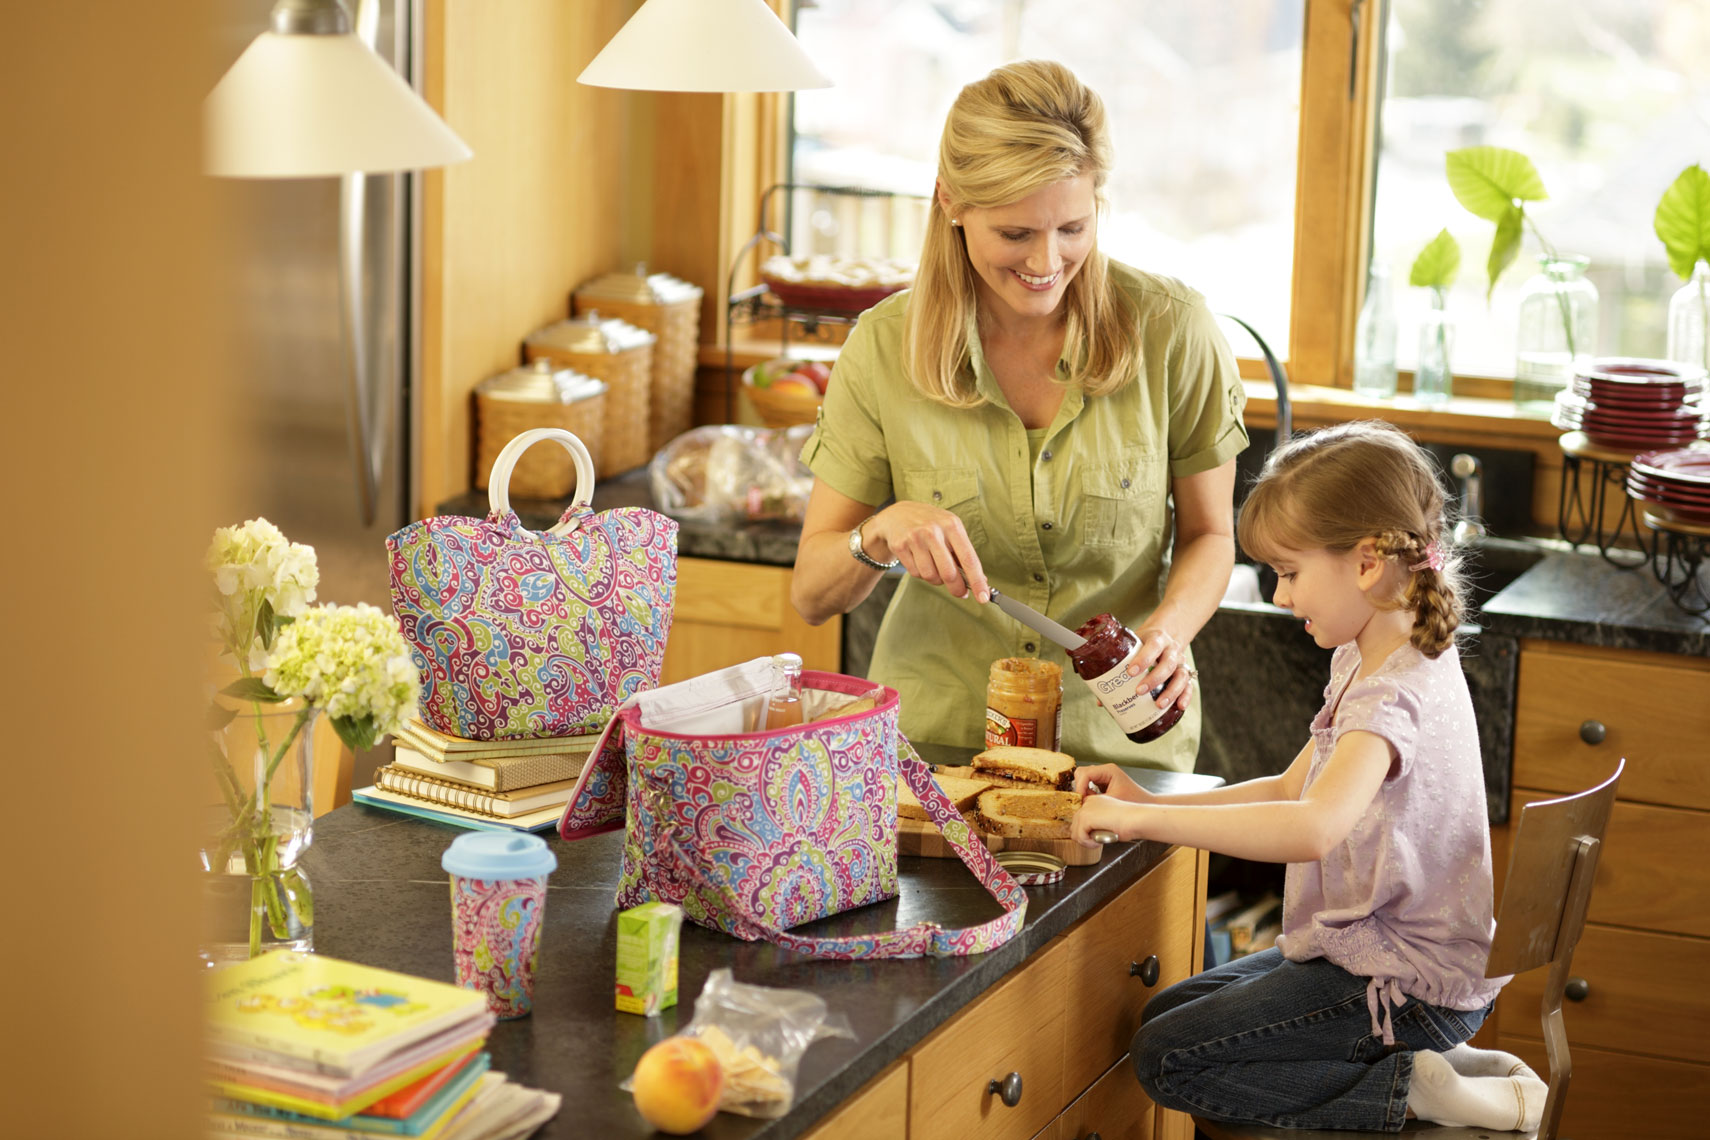 Lifestyle Product Photography With Mom And Daughter In Kitchen